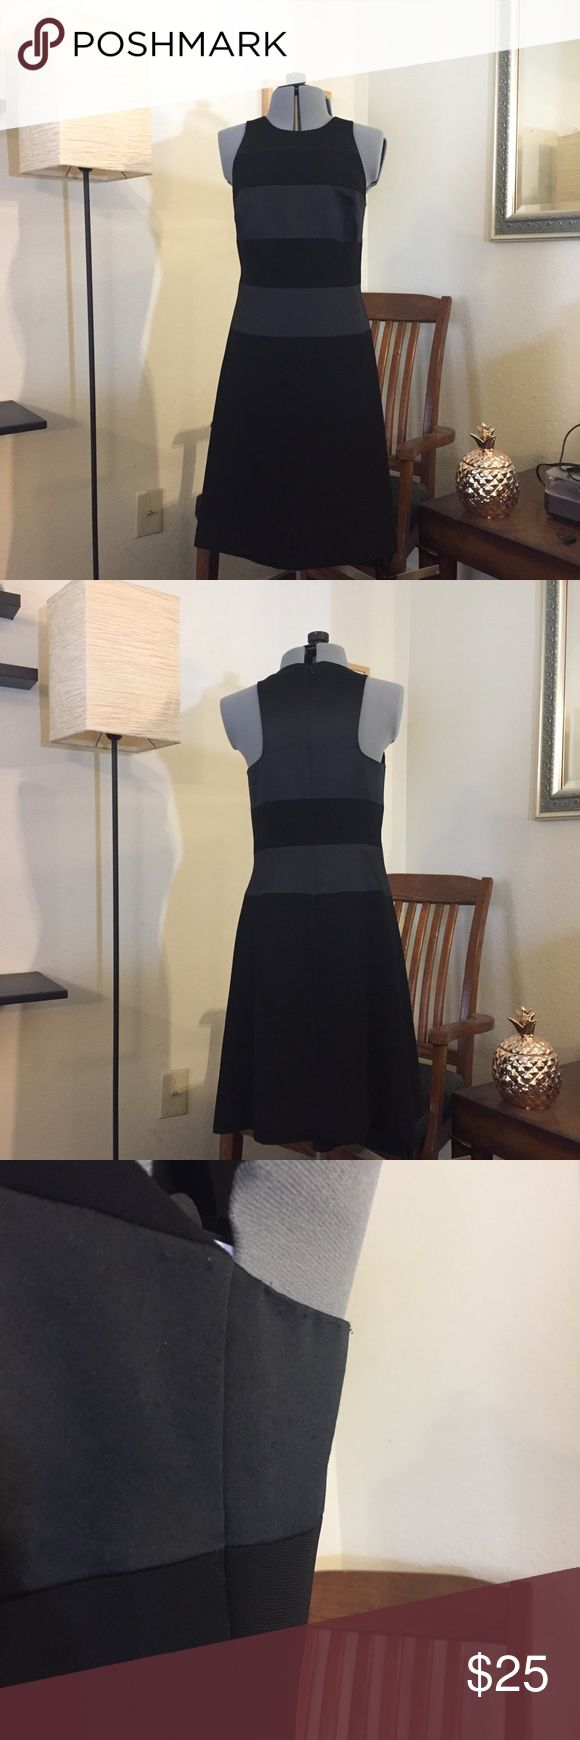 Maggie London petite black dress Black dress with satin block detailing. Dry clean only maggie london Dresses Midi